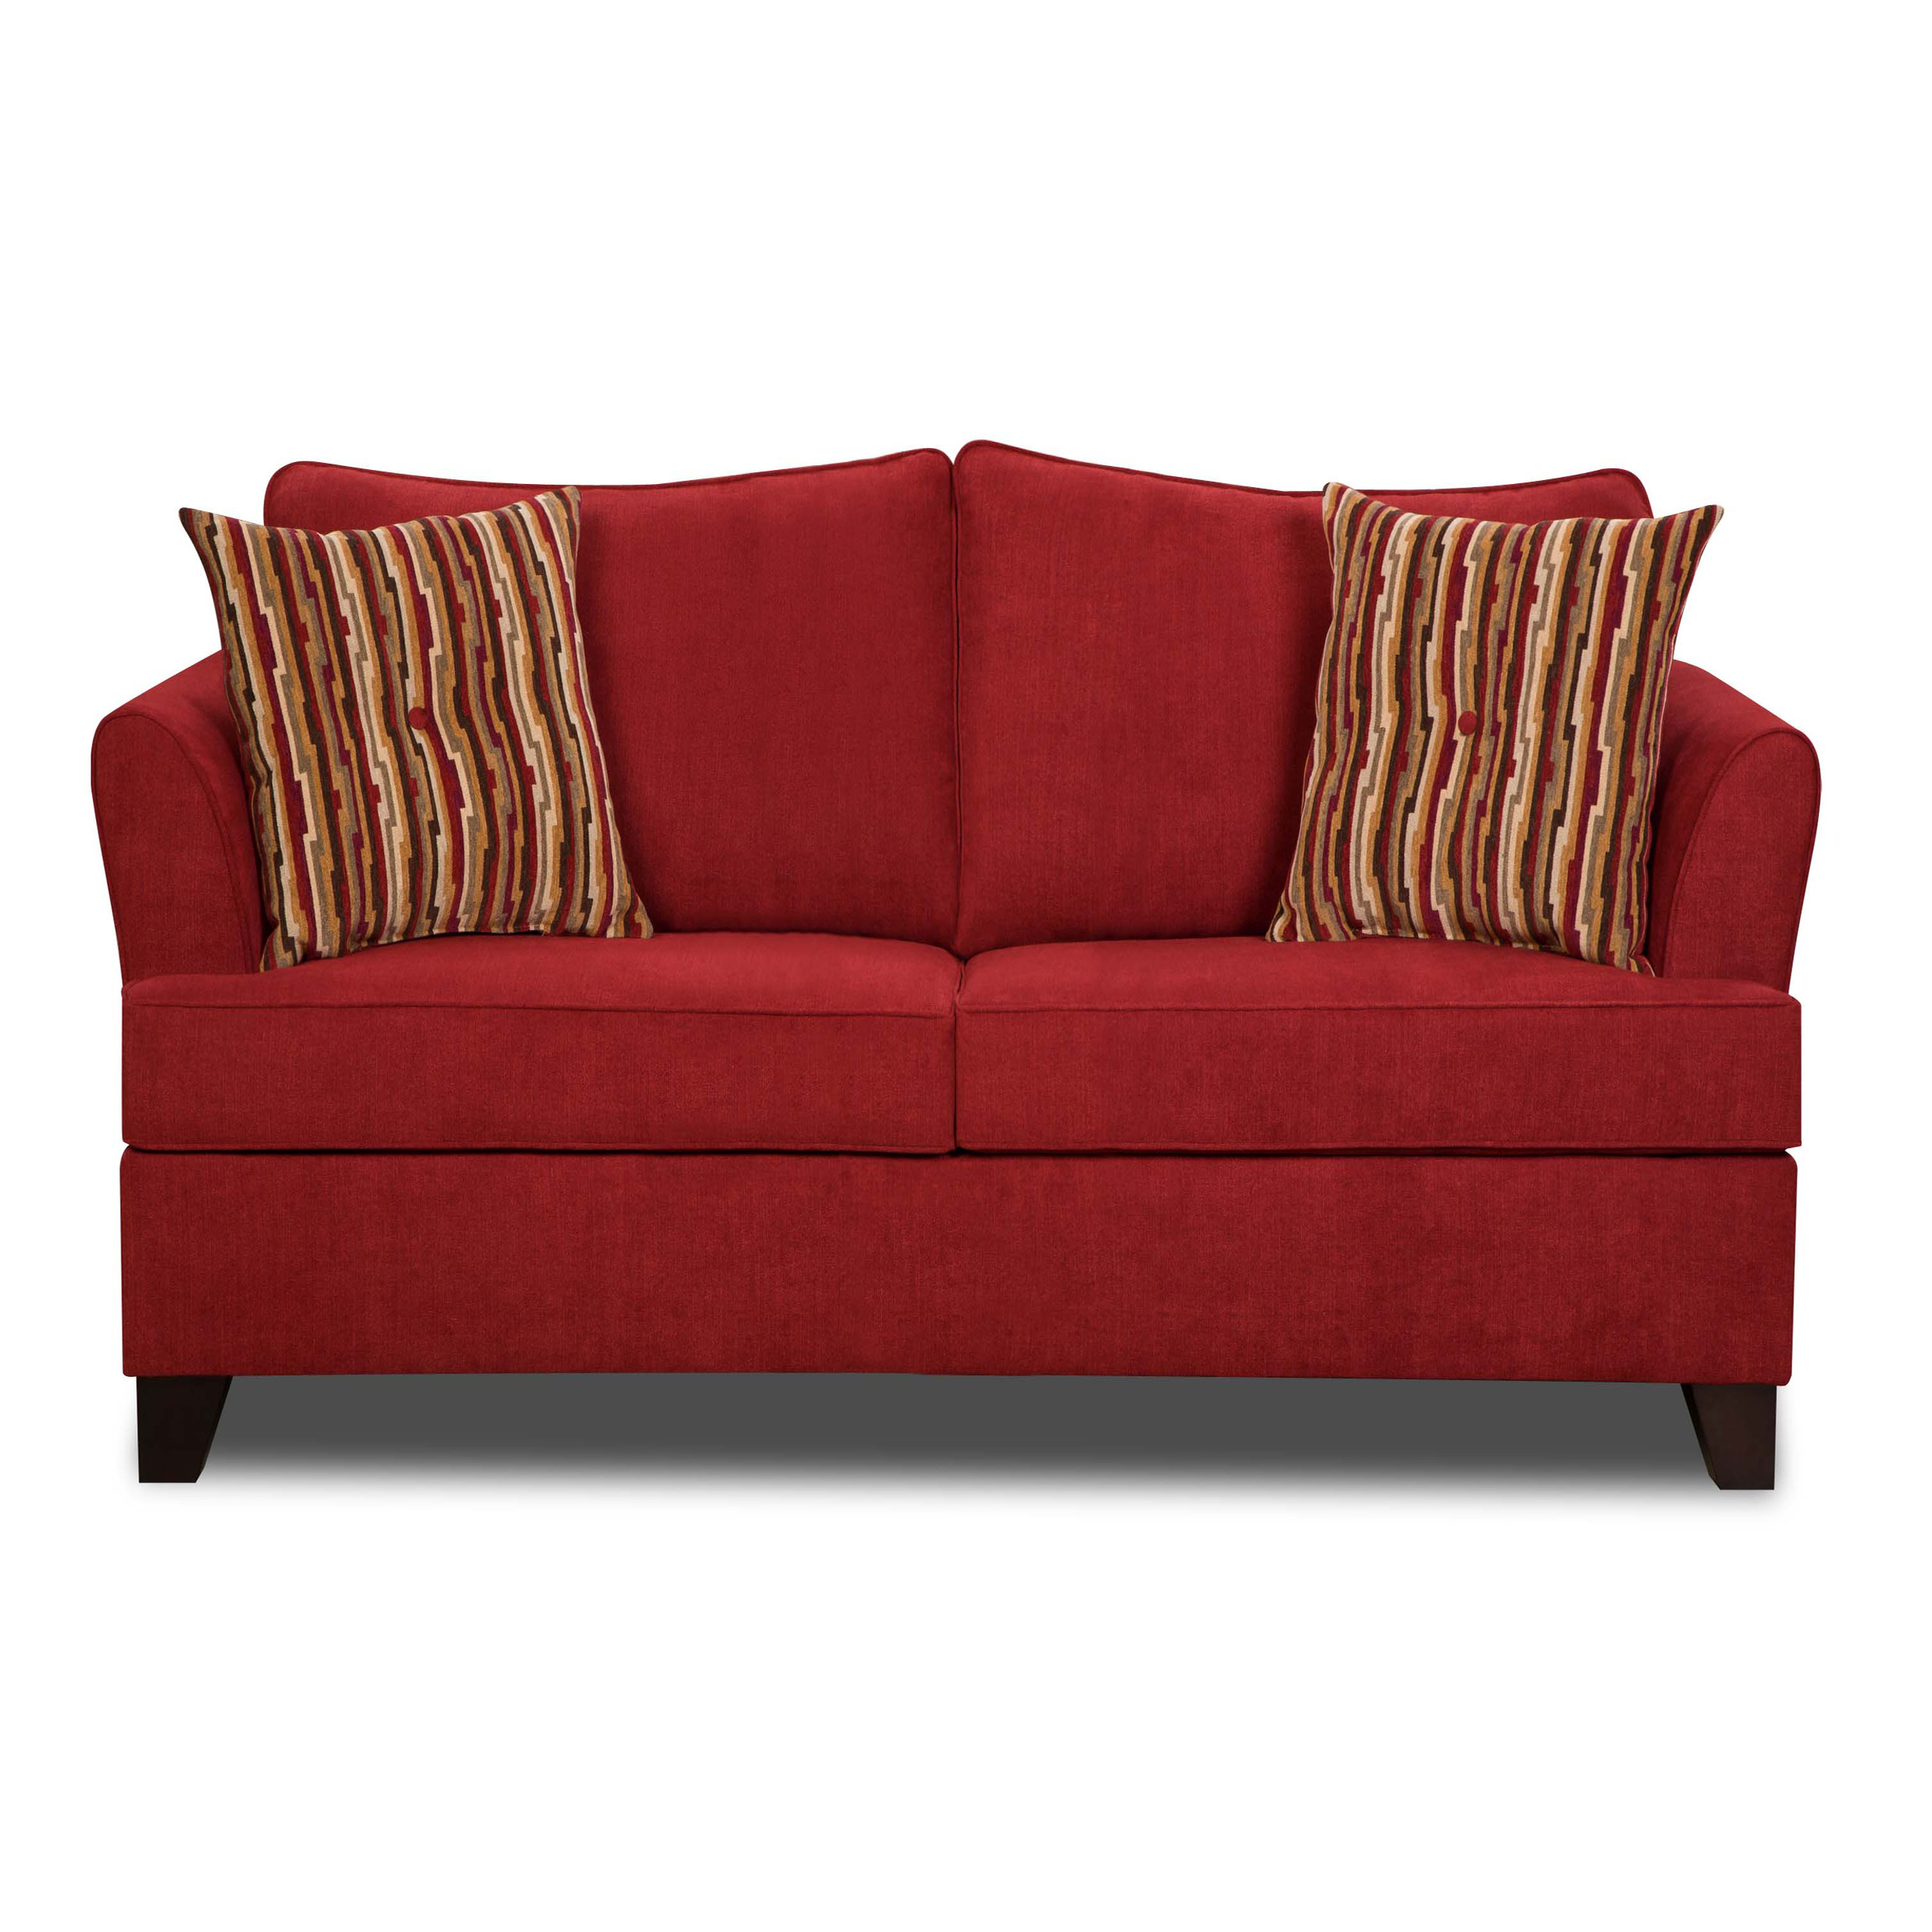 Loveseat Sleeper | Loveseat Sleeper Sofa Bed | Loveseats with Sleeper